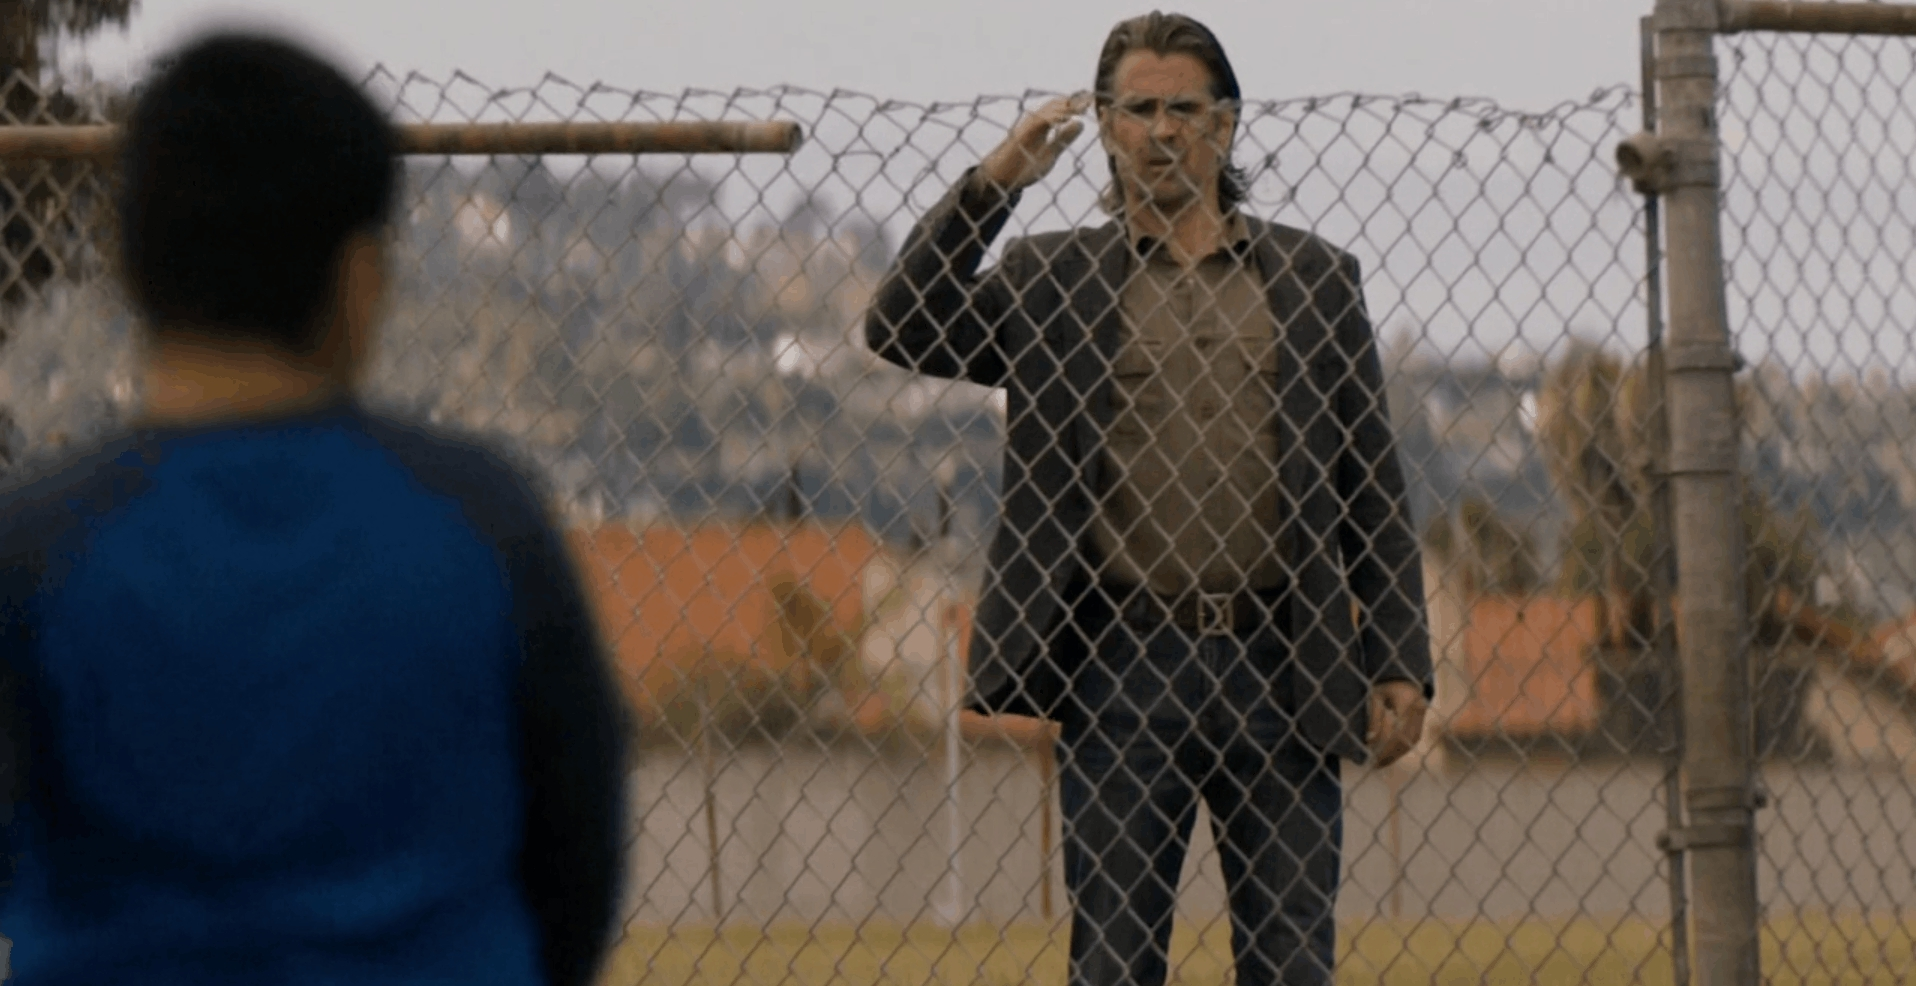 TrueDetective, truedetective, [S2E8][GIF]Ray and Chad (reddit) GIFs